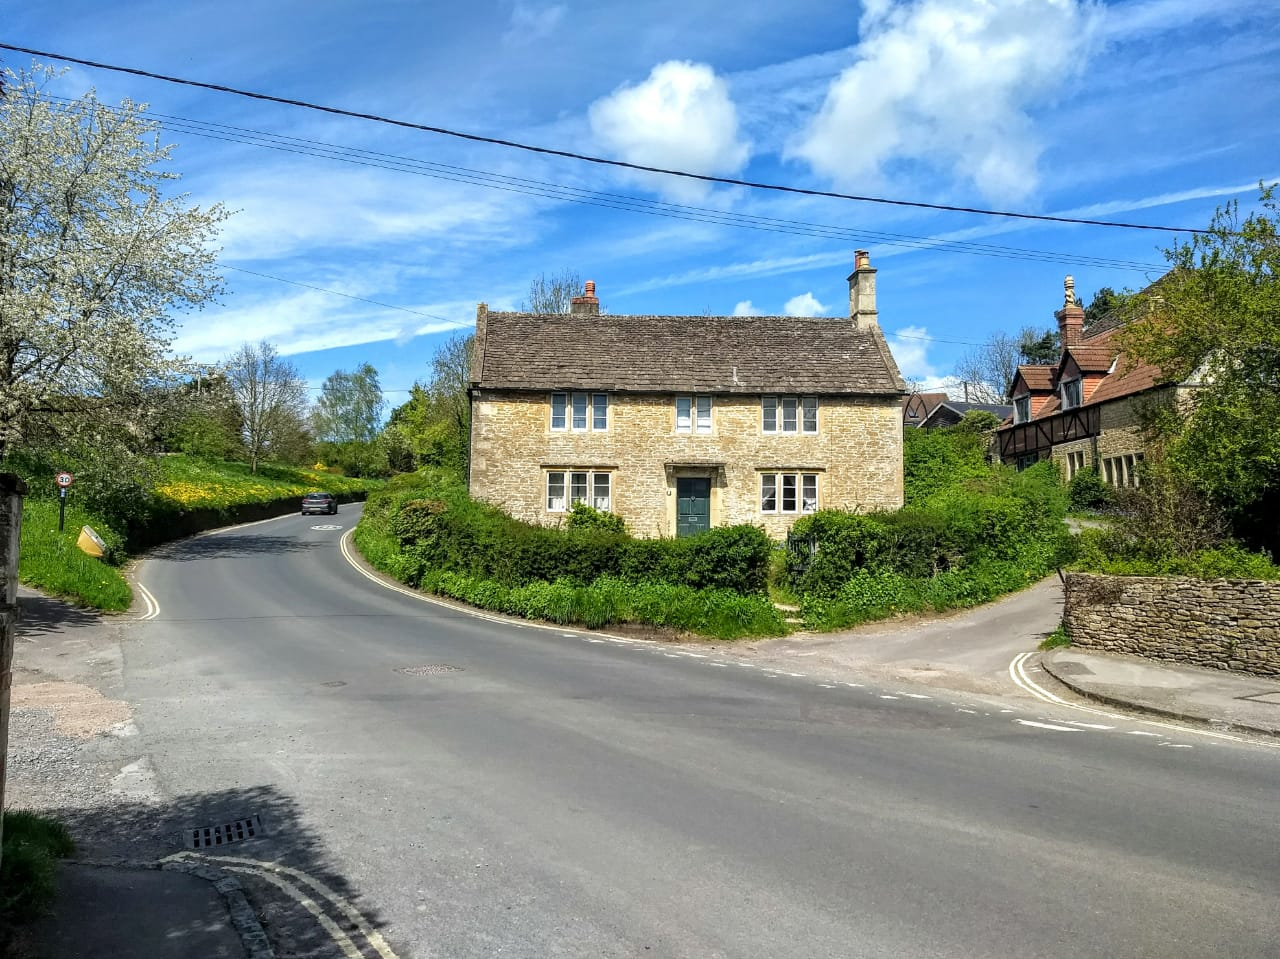 The village of Lacock wiltshire - english countryside getaway